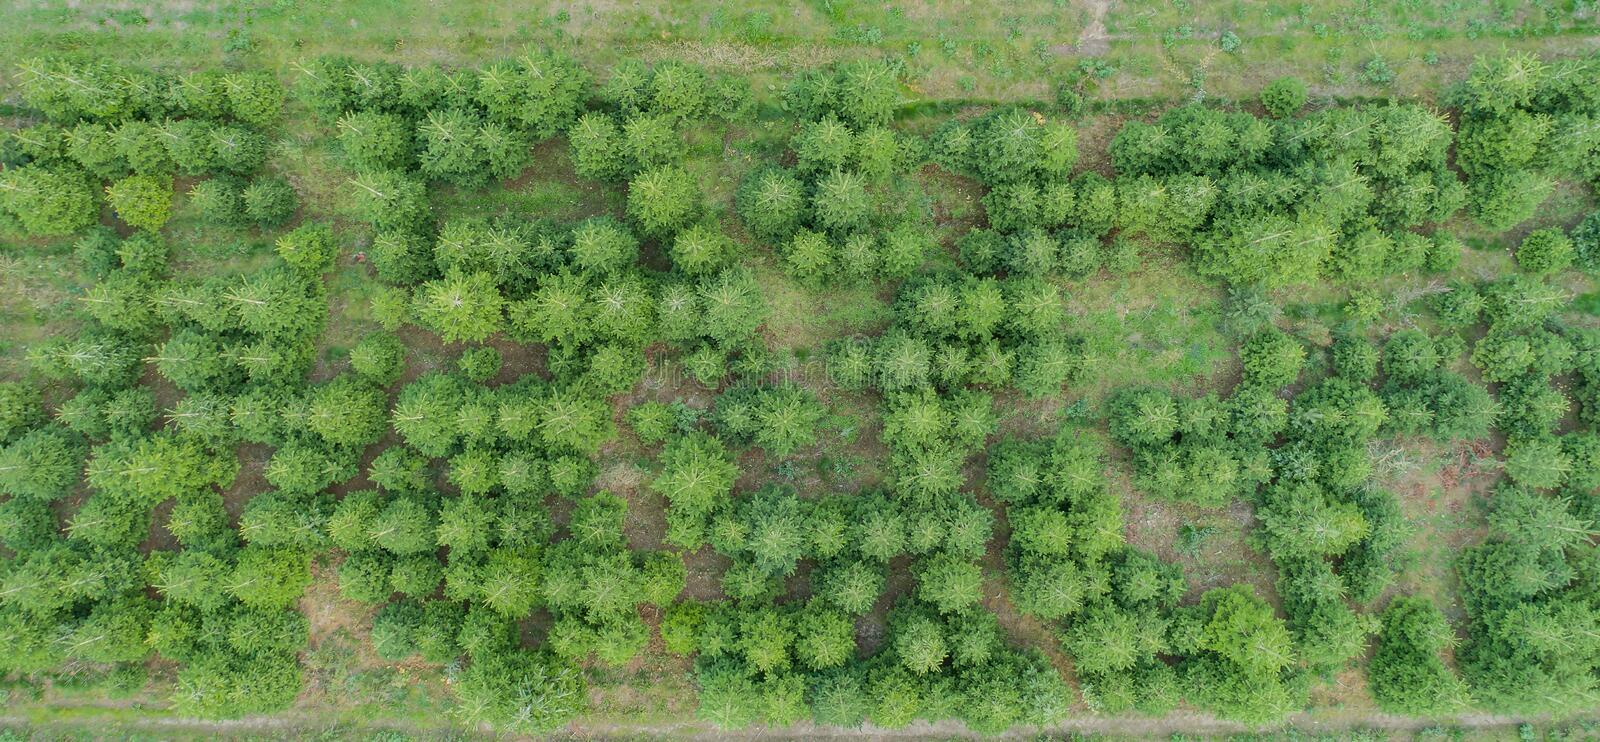 Aerial view of a mixed forest.  royalty free stock photography